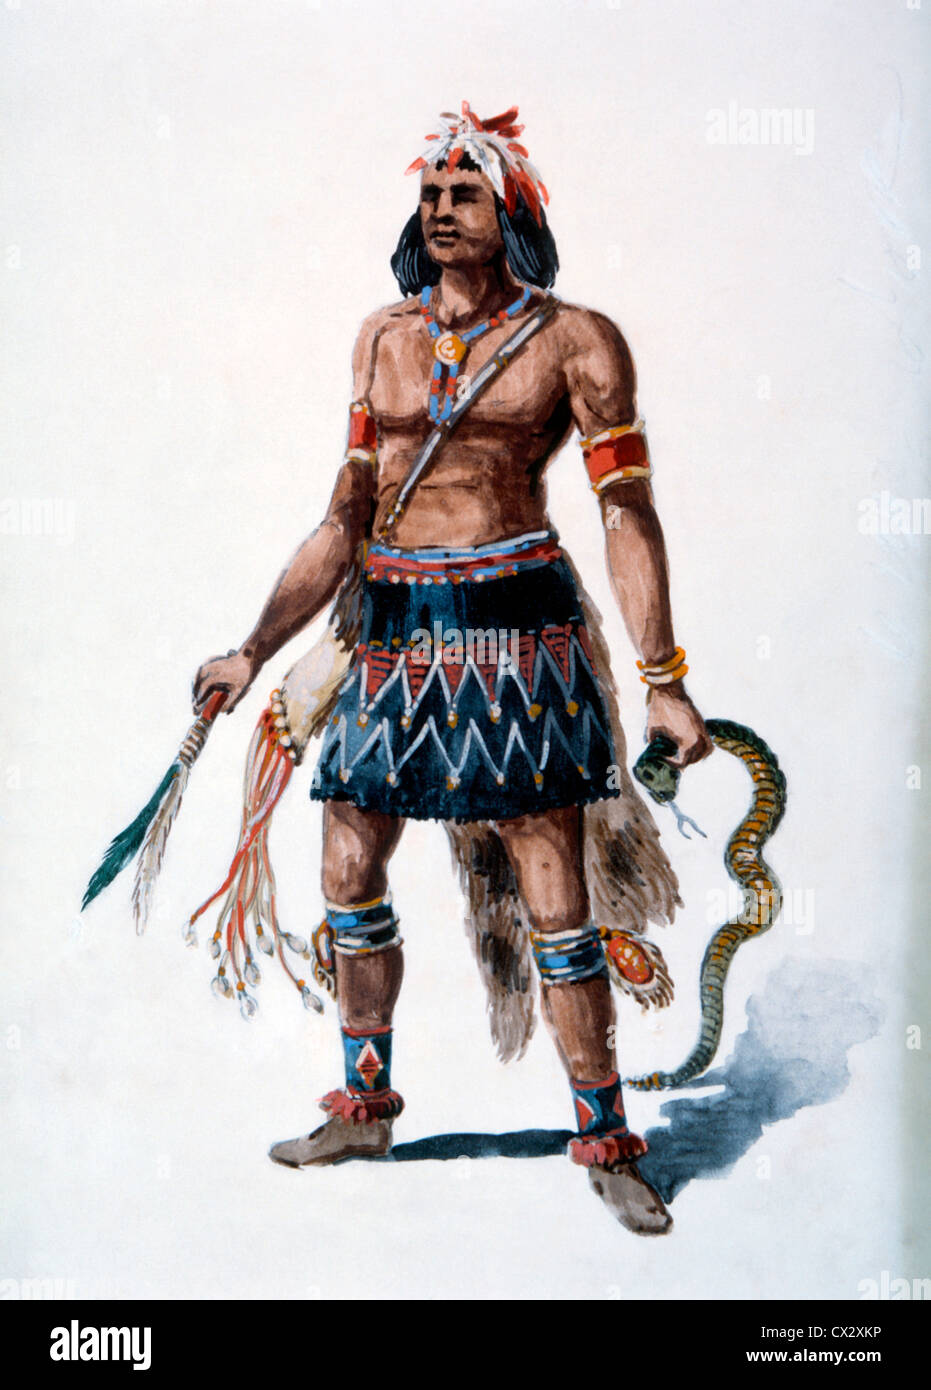 Moqui Warrior, Watercolor Painting by William L. Wells for the Columbian Exposition Pageant, 1892 - Stock Image